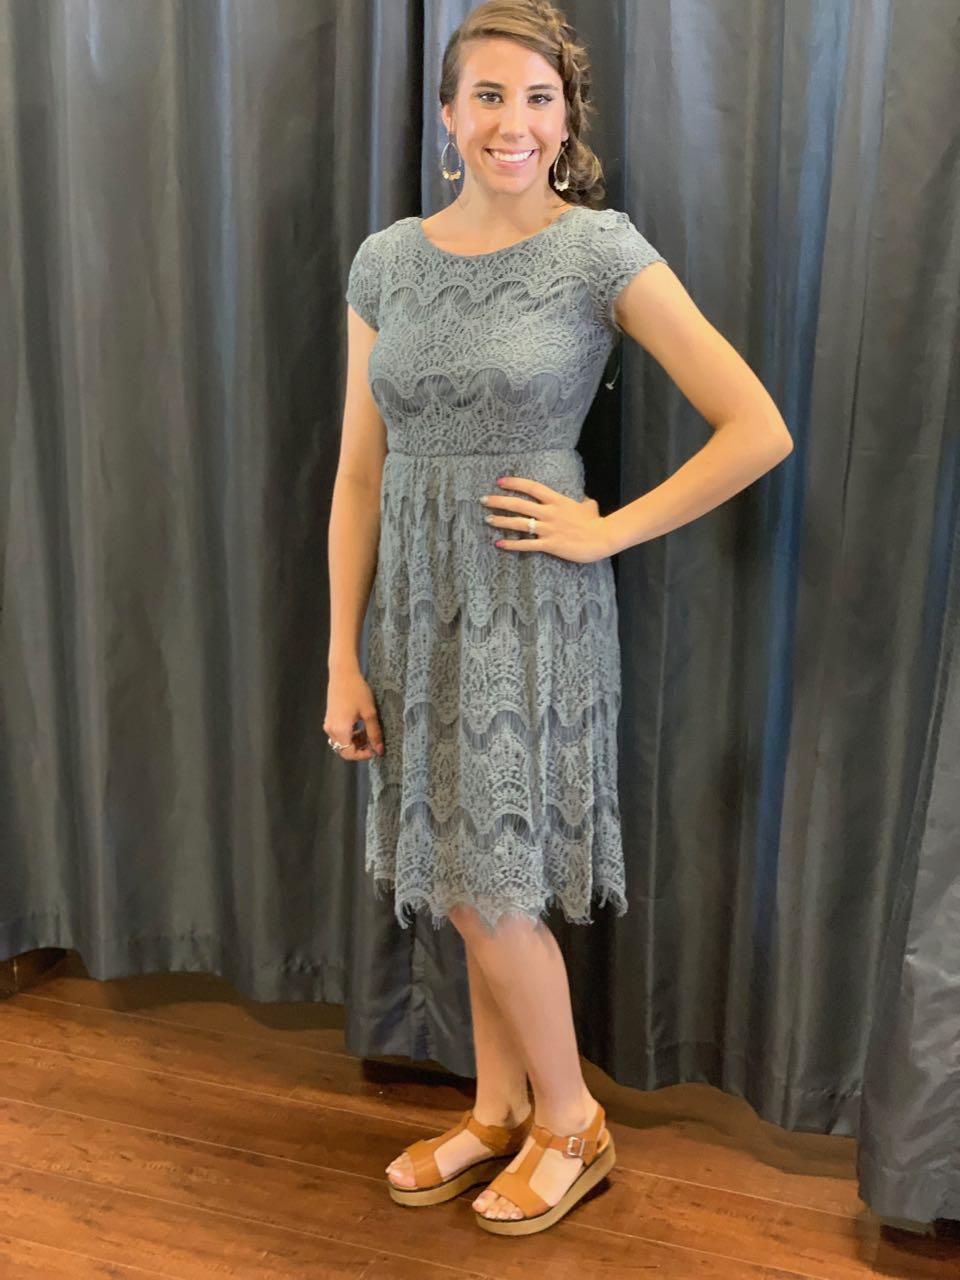 Taryn Charcoal Modest Bridesmaids Dress from A Closet Full of Dresses